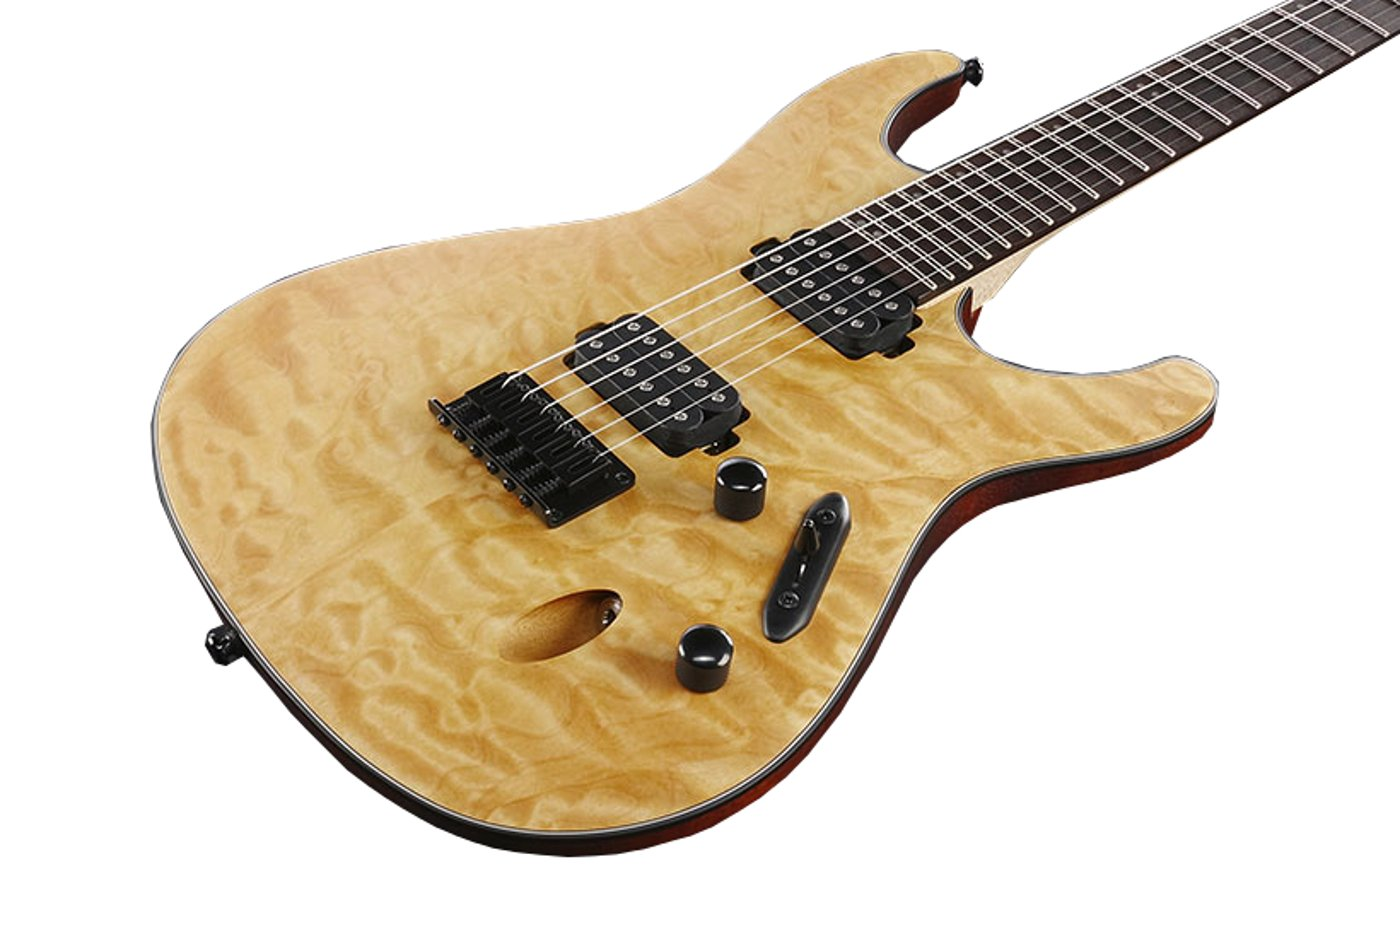 S Series Electric Guitar with Quilted Maple Top